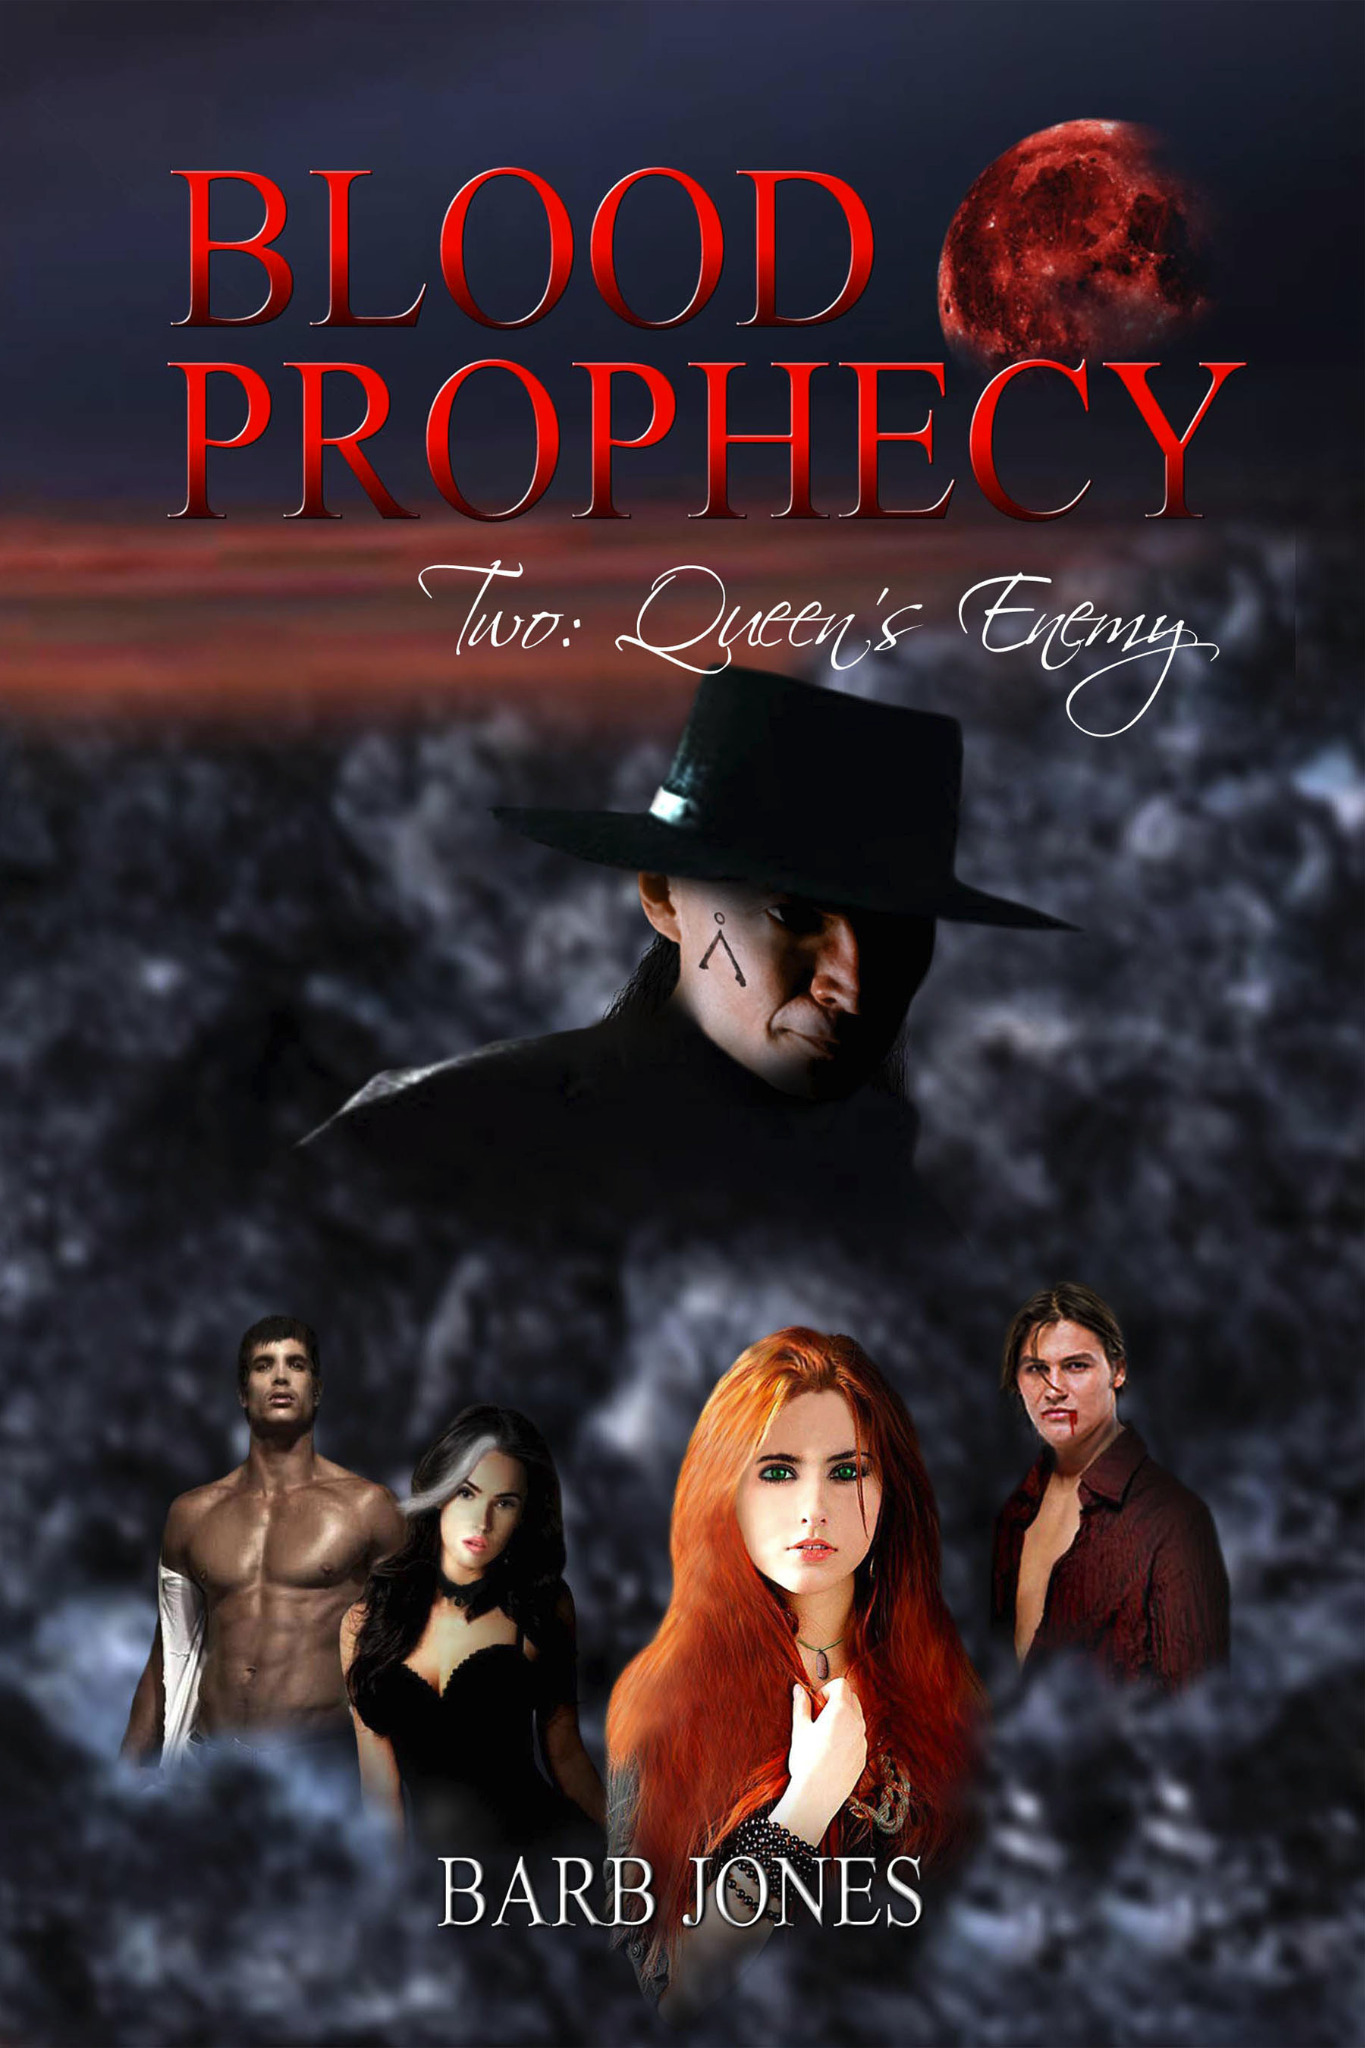 Queen's Enemy - Blood Prophecy Book 2